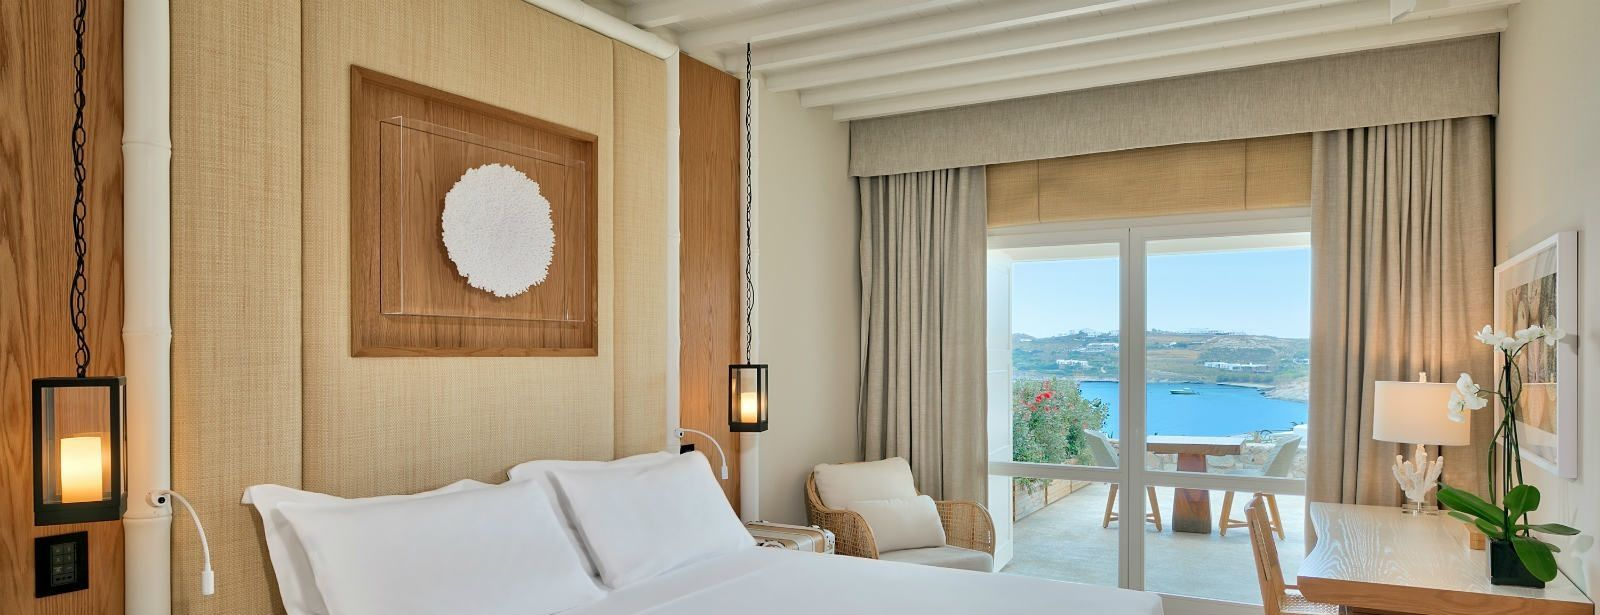 Deluxe Seaview Room with private balcony at Santa Marina Resort Mykonos Luxury Hotel